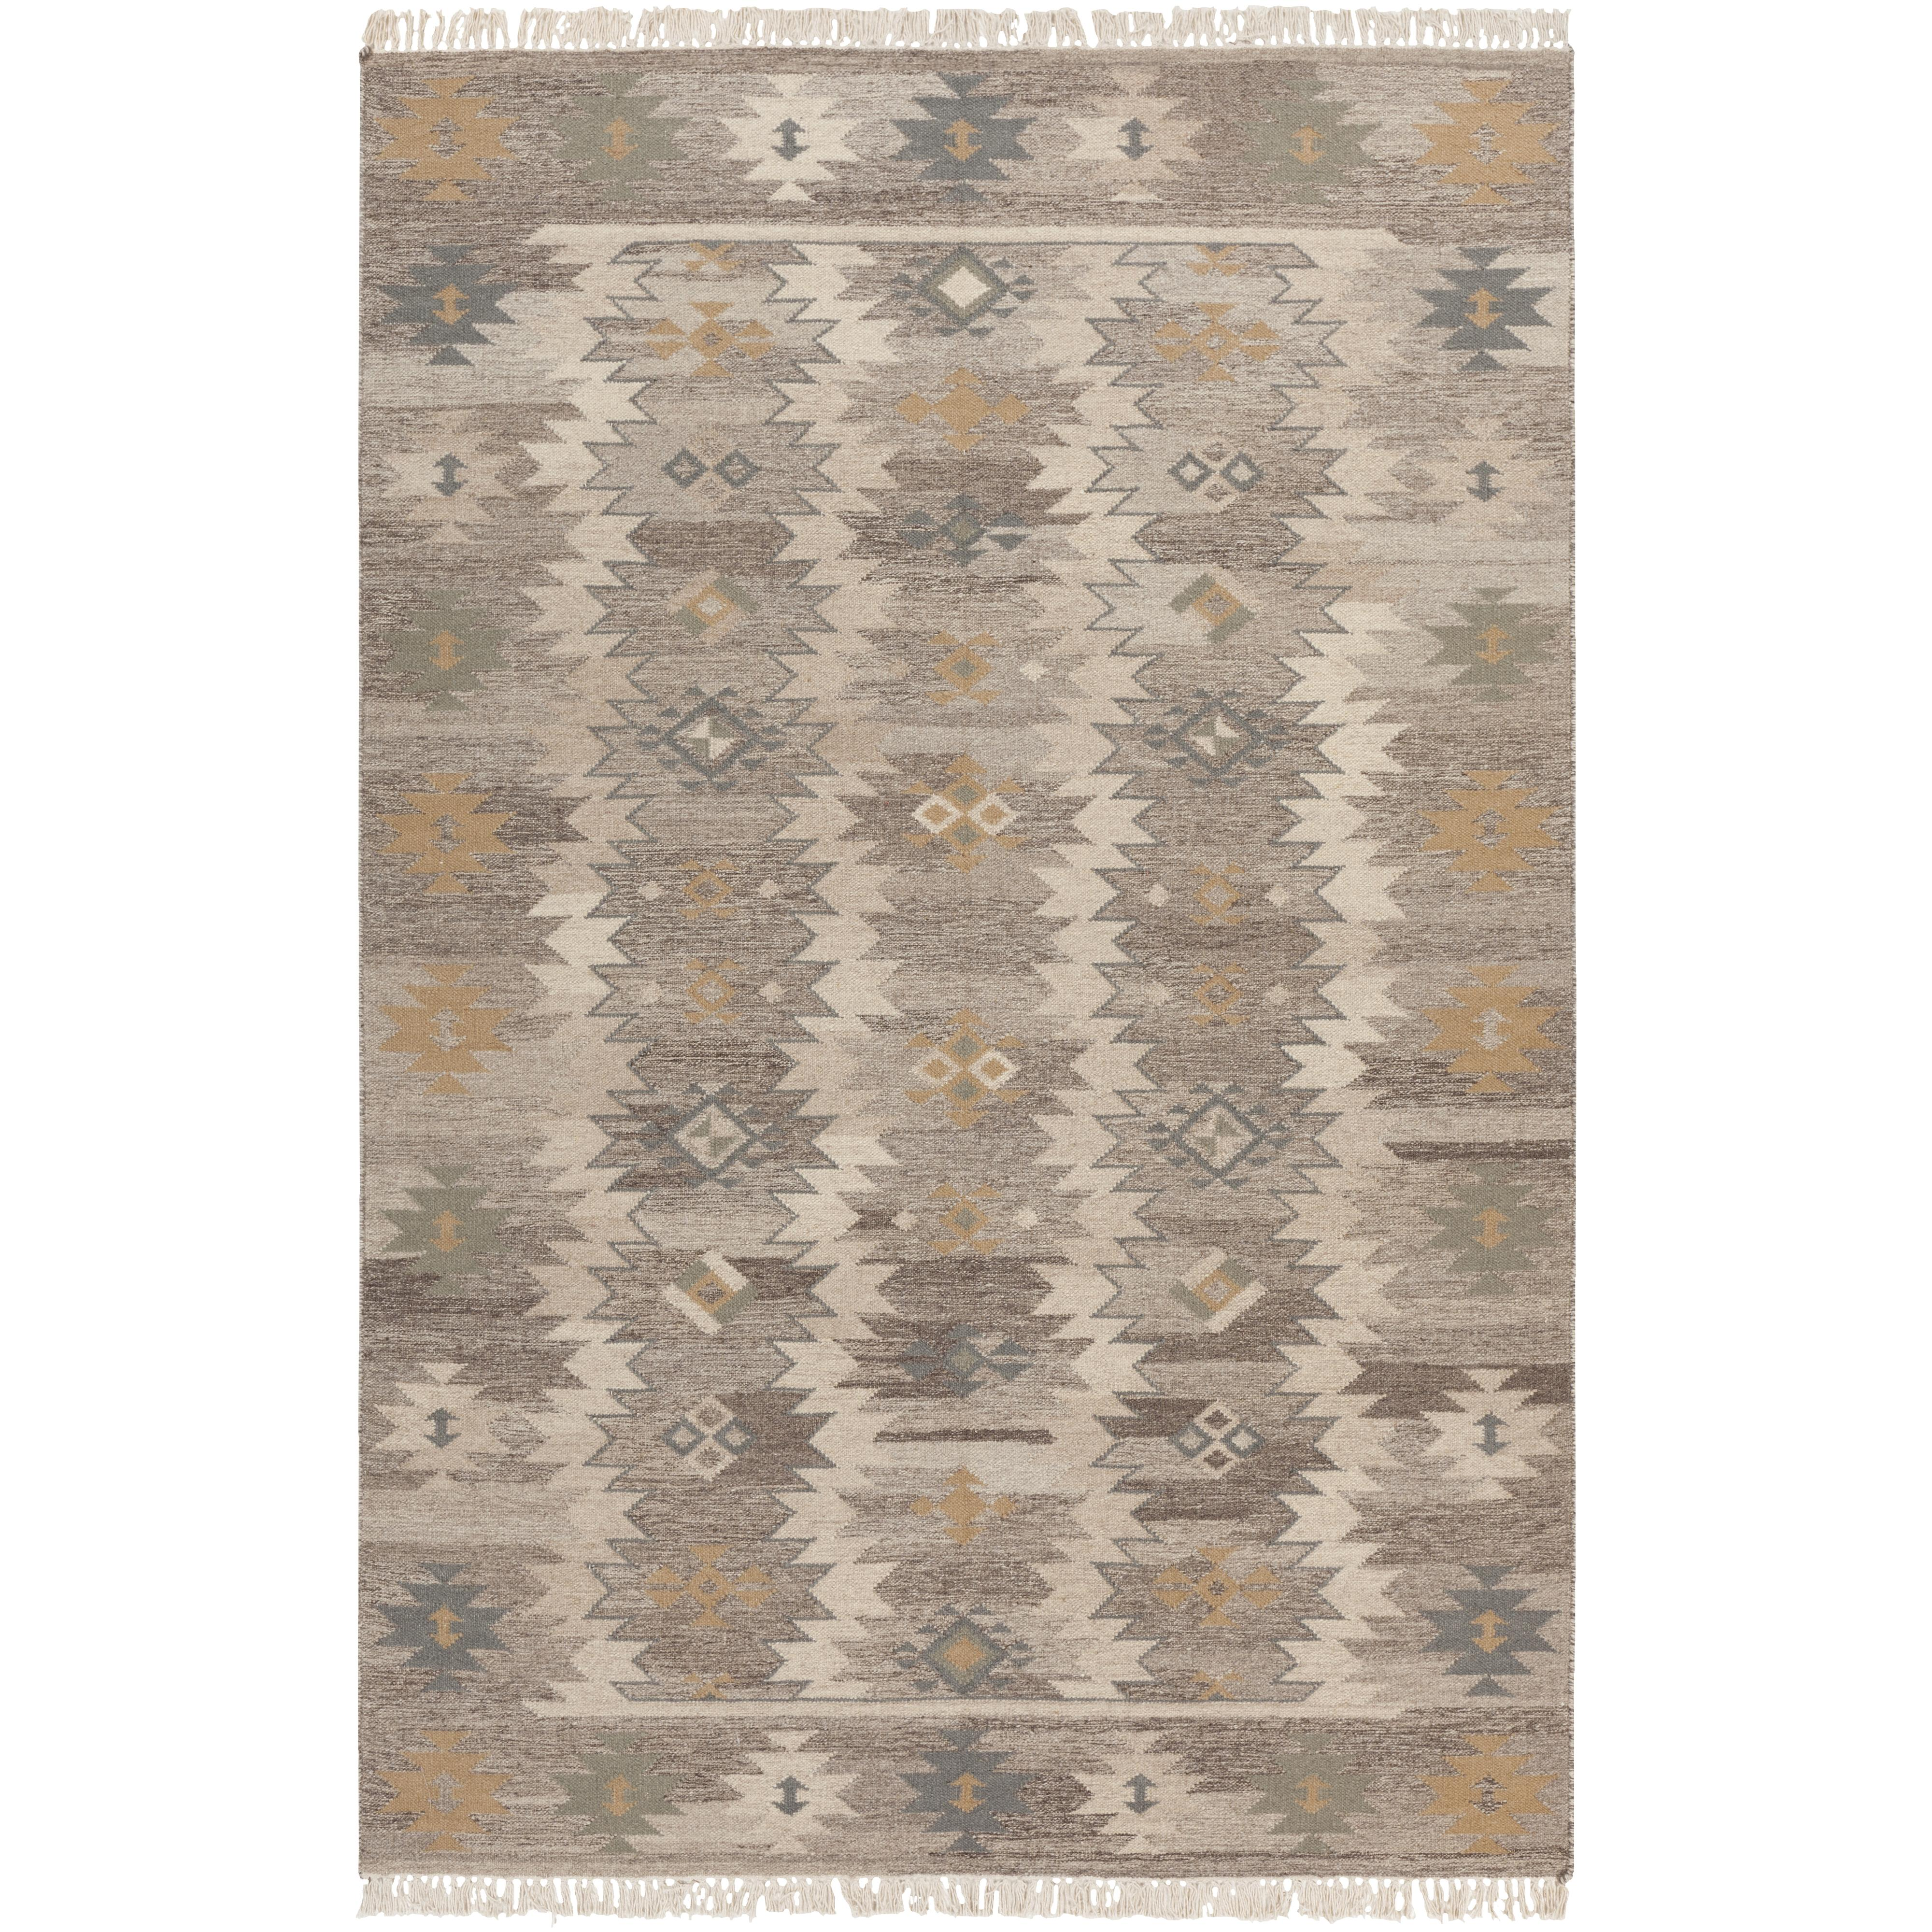 Surya Rugs Jewel Tone II 5' x 8' - Item Number: JTII2047-58